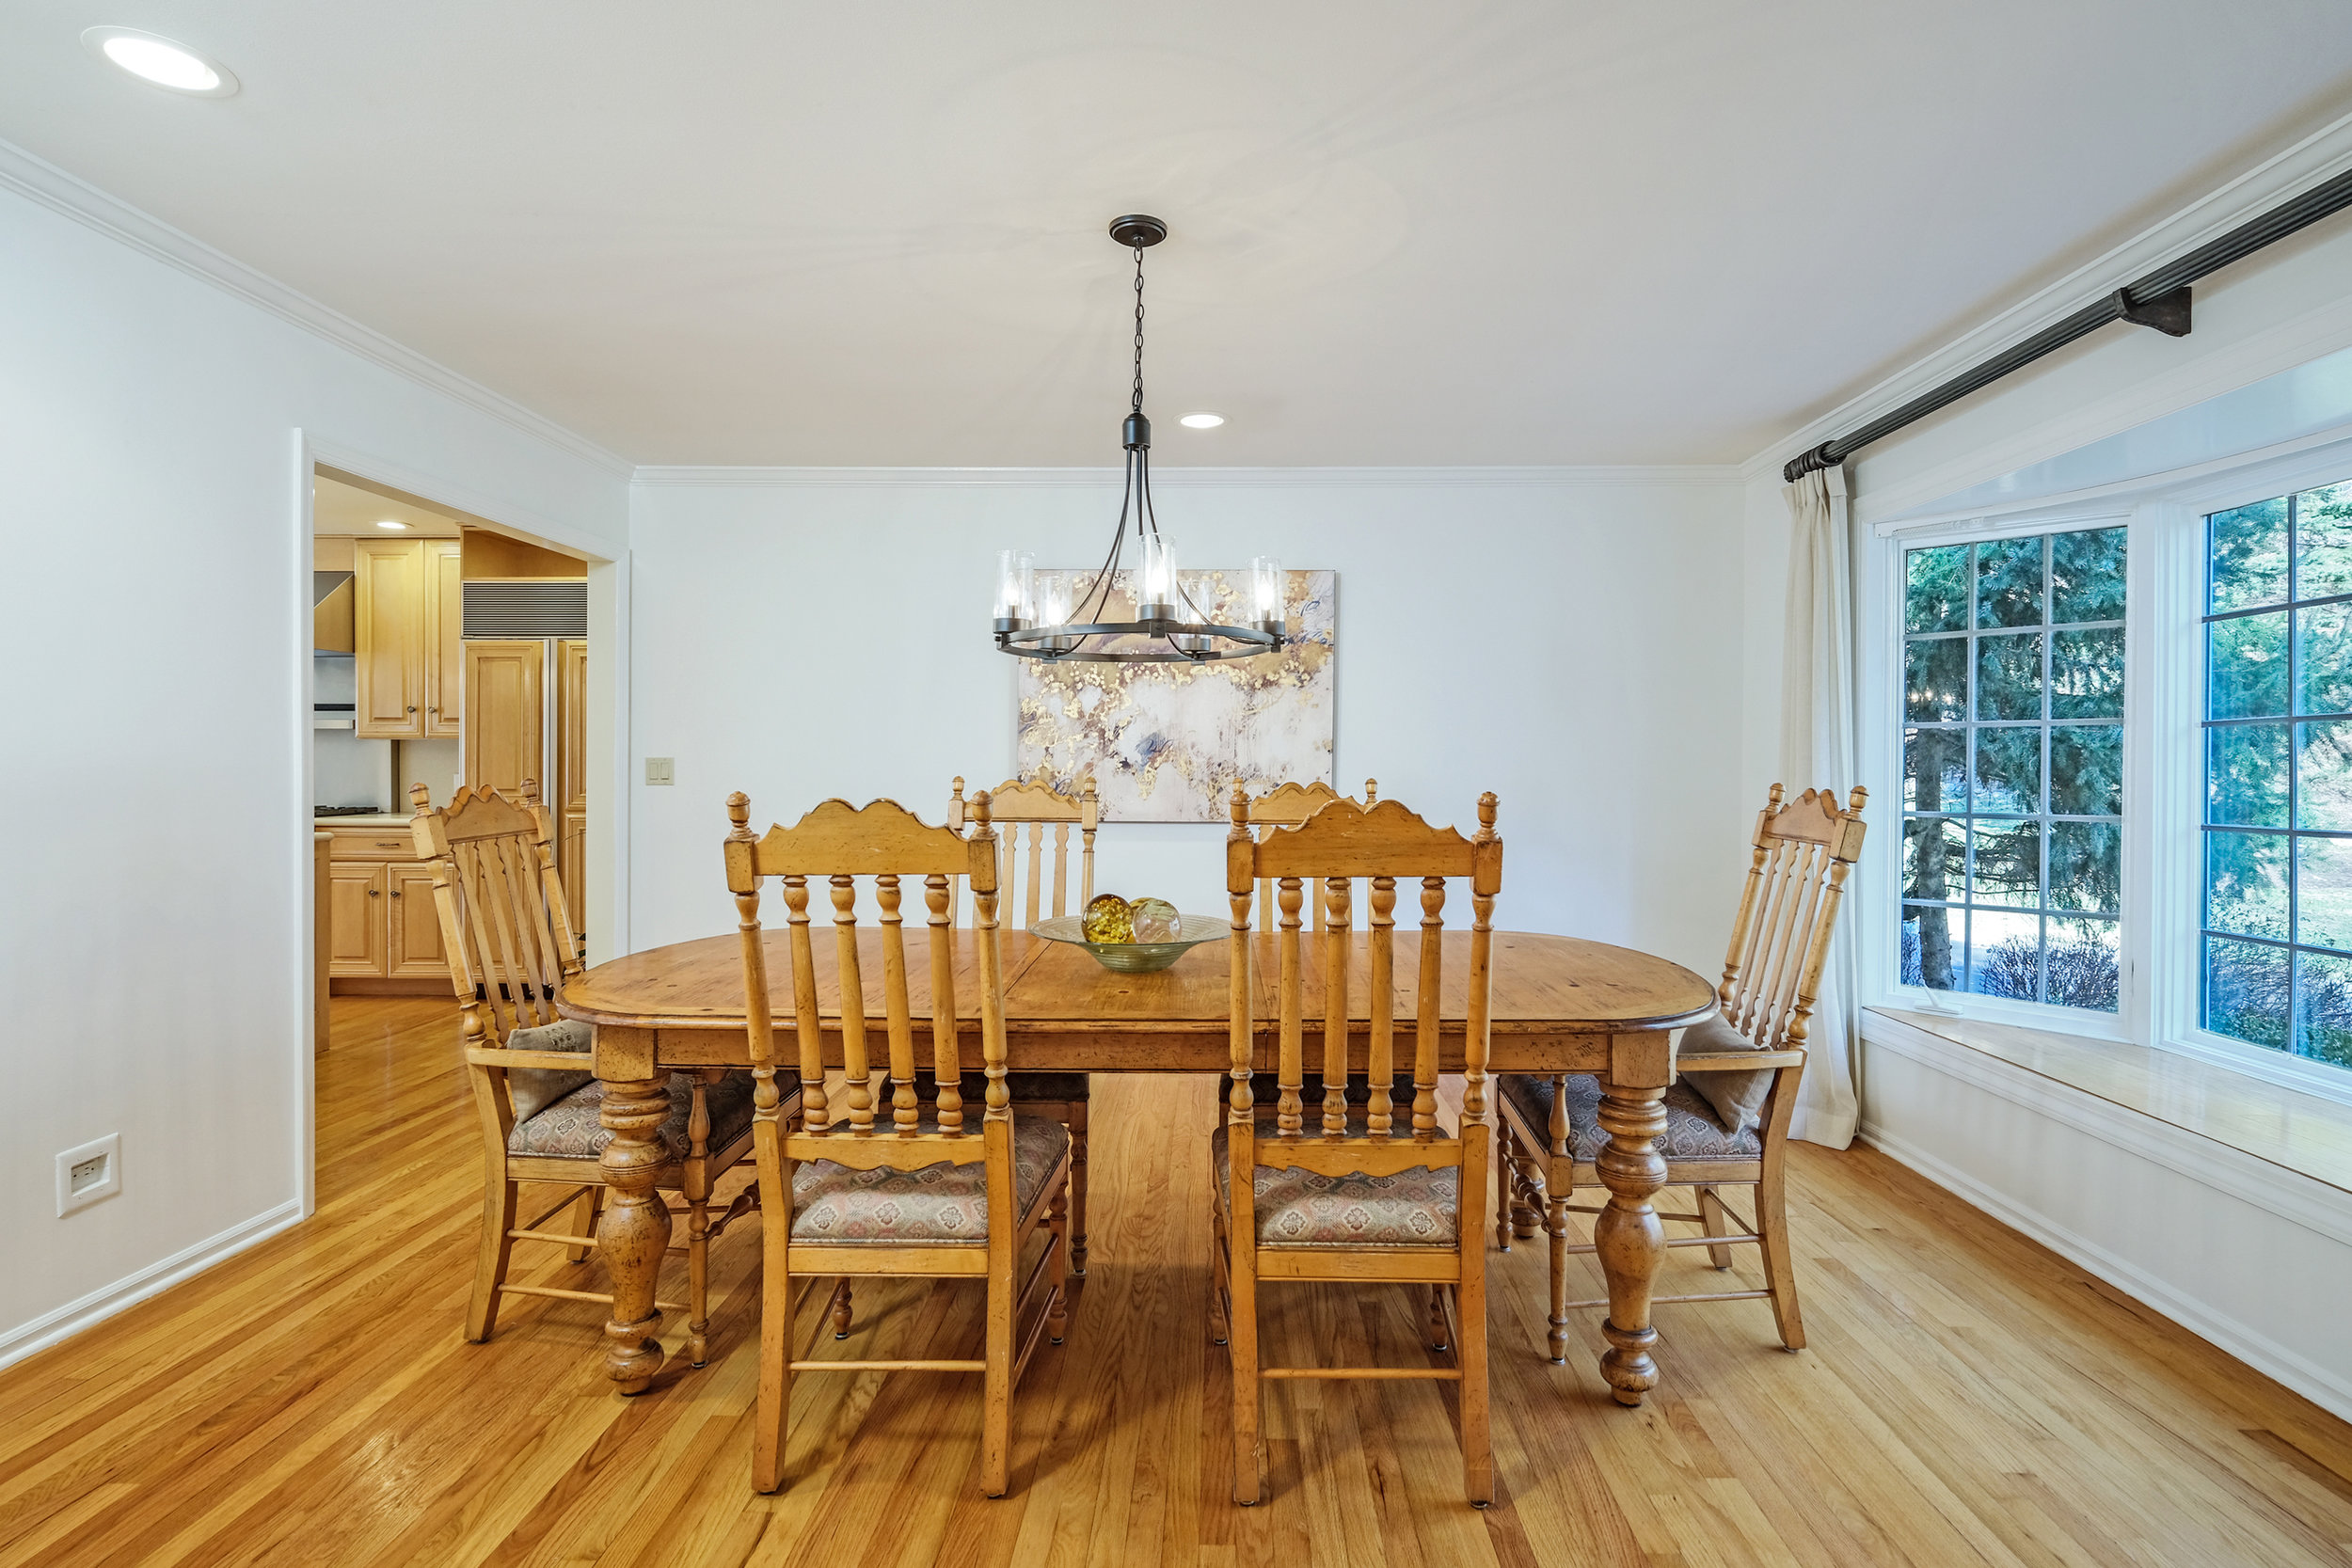 21 Whippoorwill Crossing Armonk, NY 10504 (14of  28).jpg